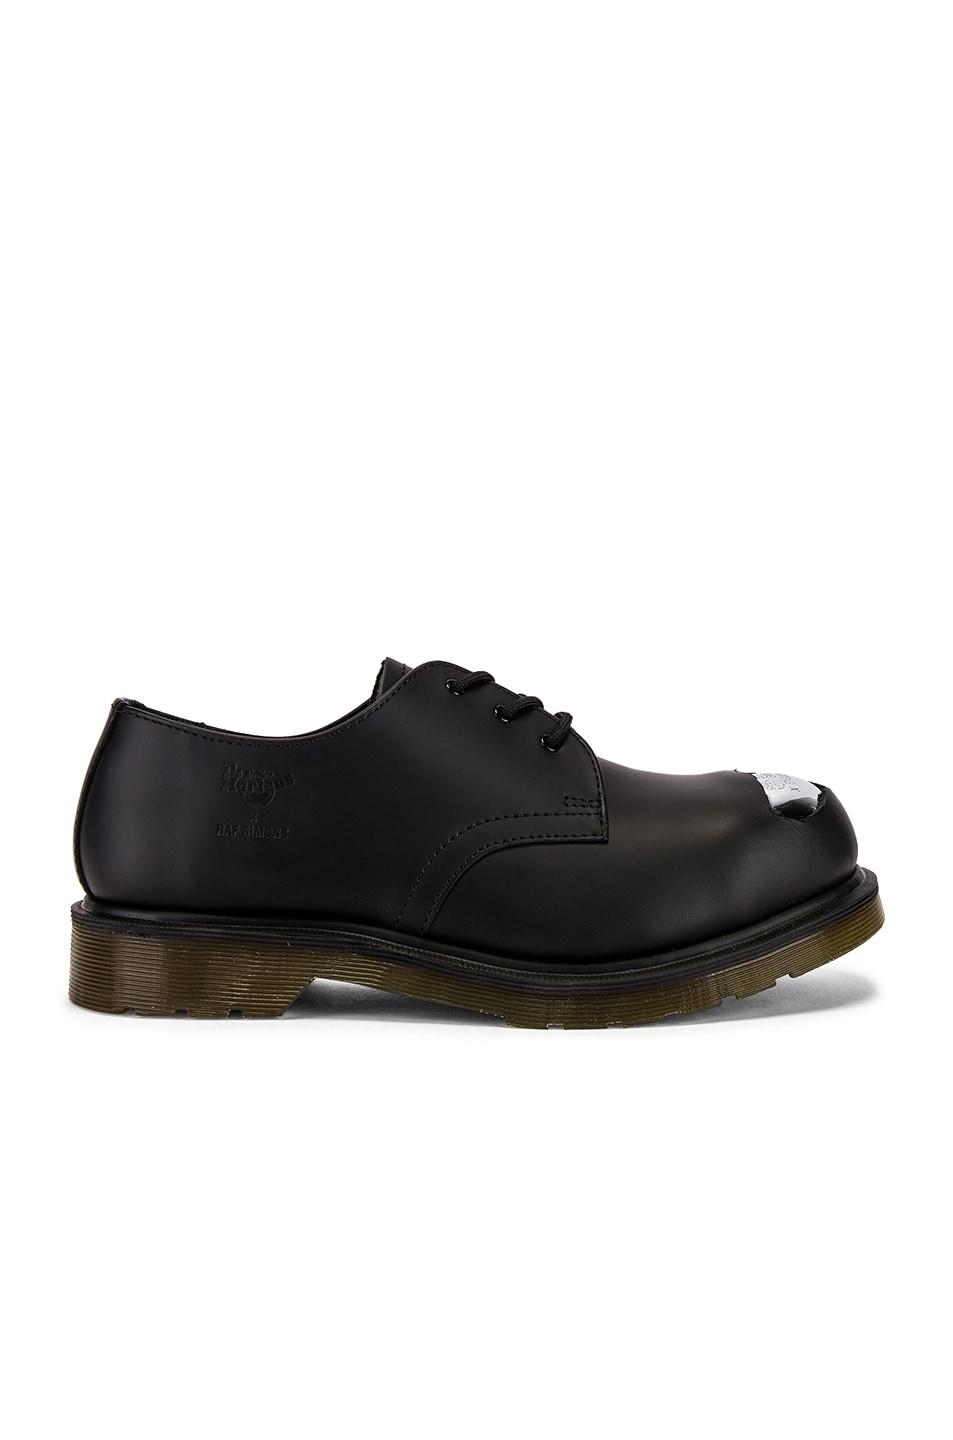 Image 2 of Raf Simons x Dr. Martens Cut Out Steel Toe Shoes in Black